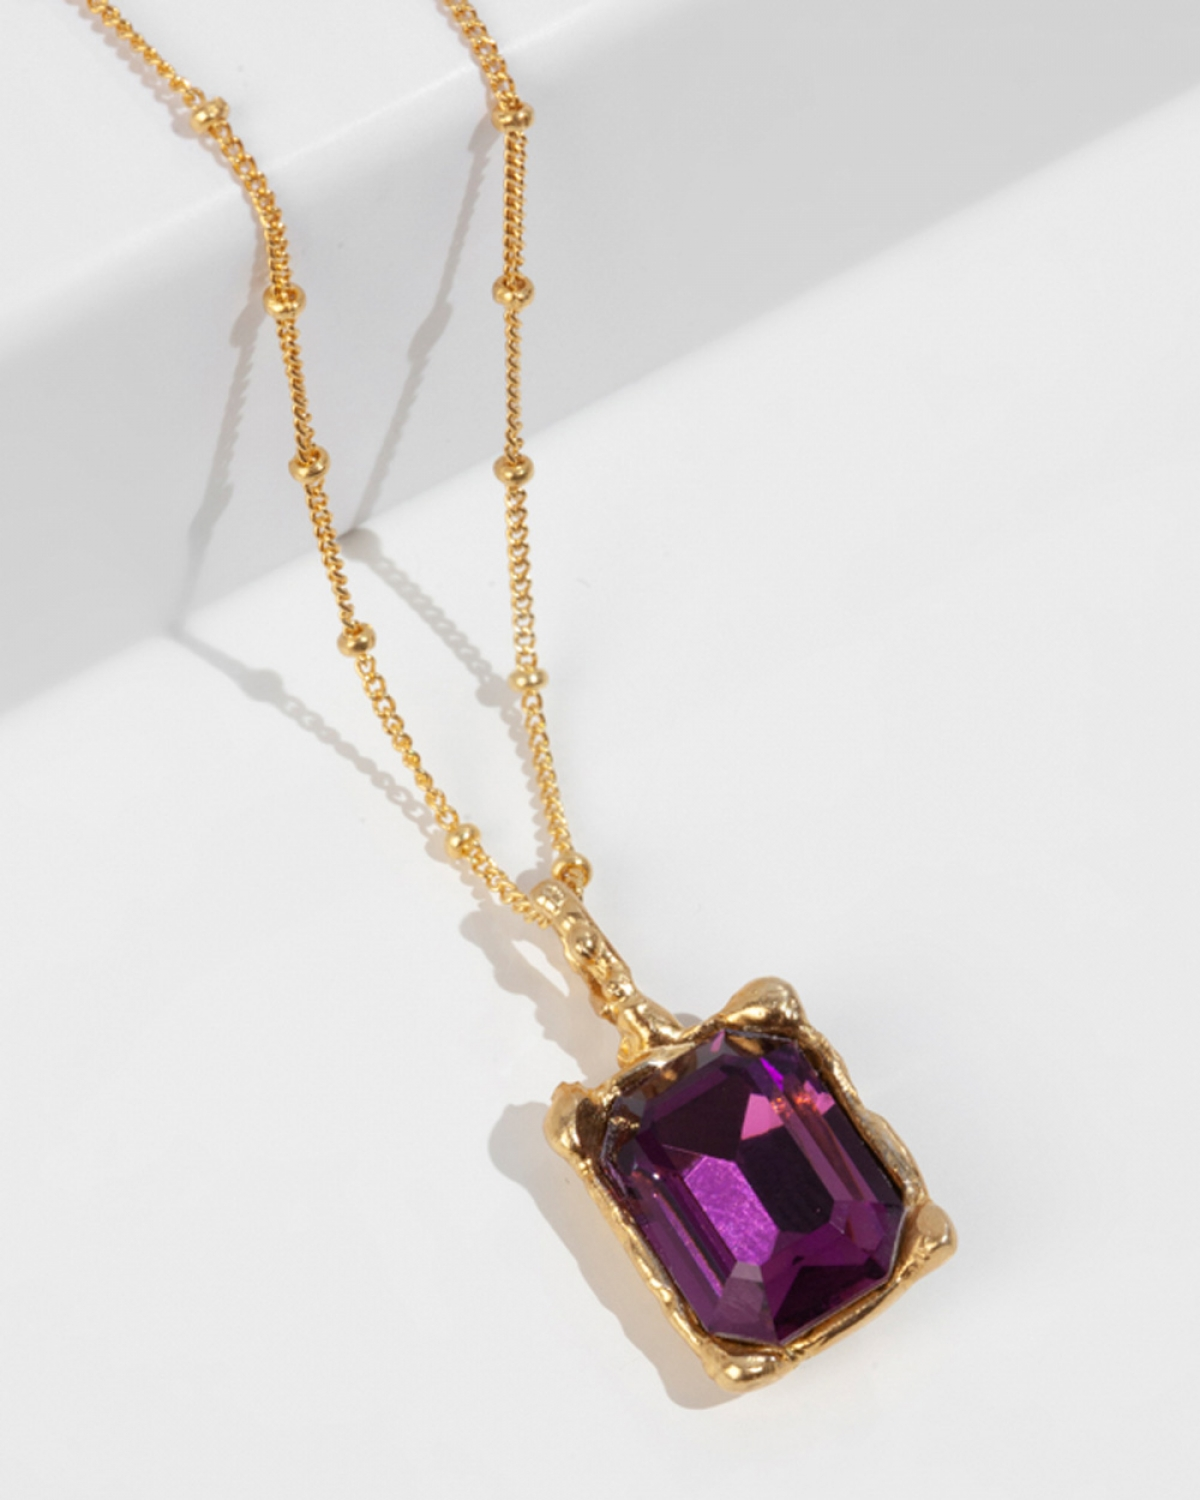 ADELA Gold Pendant/Necklace